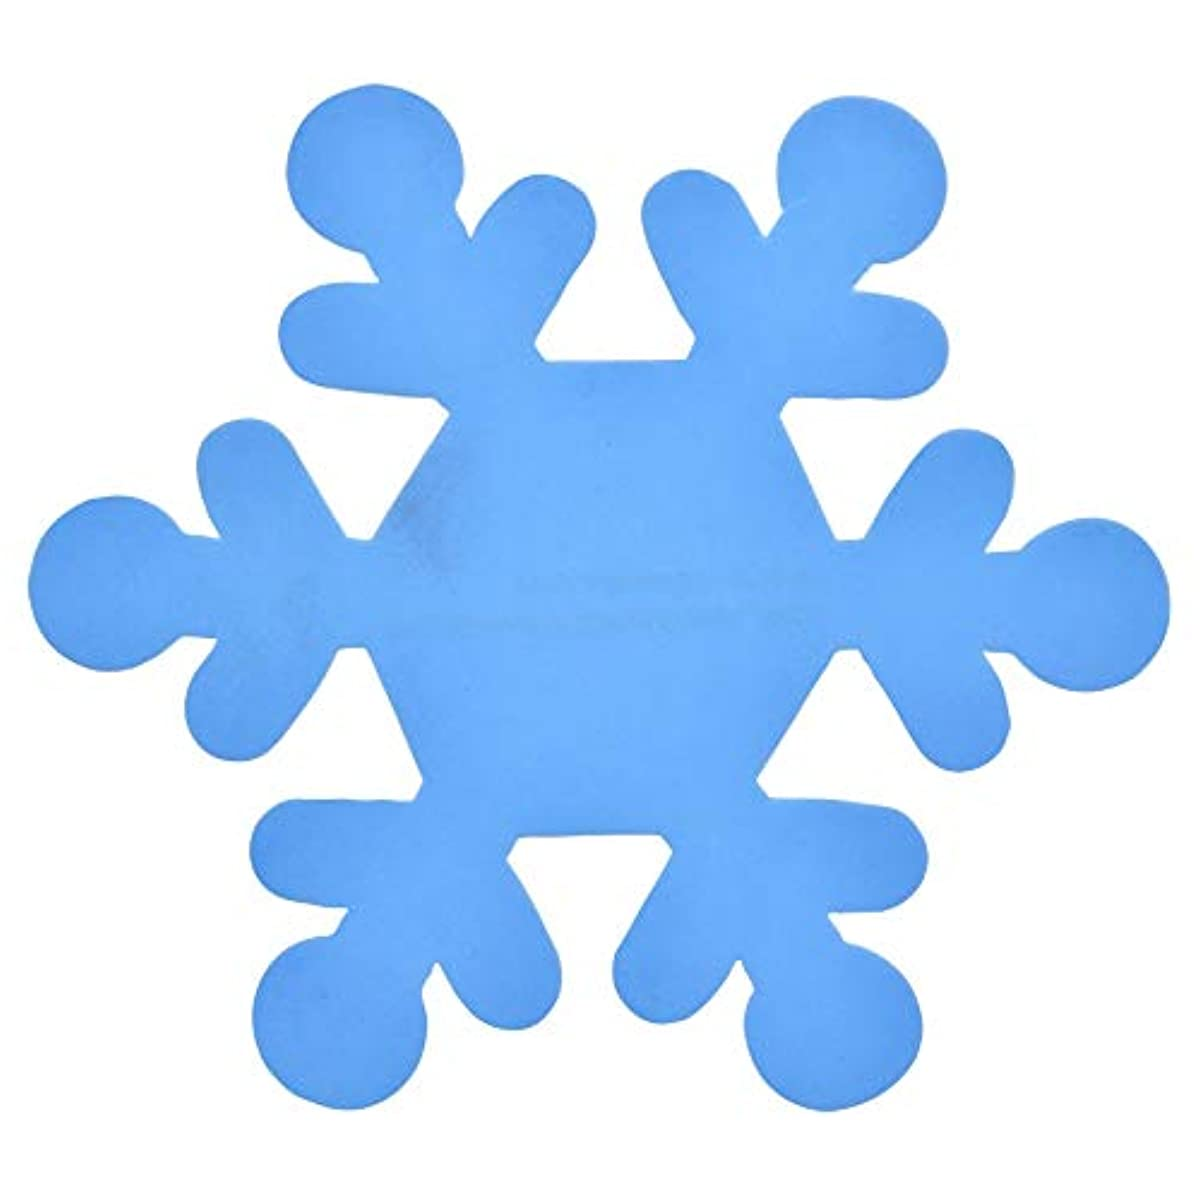 Foam Sheet for decorating Christmas (12) shapes of either trees, gingerbread men ornaments, and snowflakes. (Blue Snowflakes)